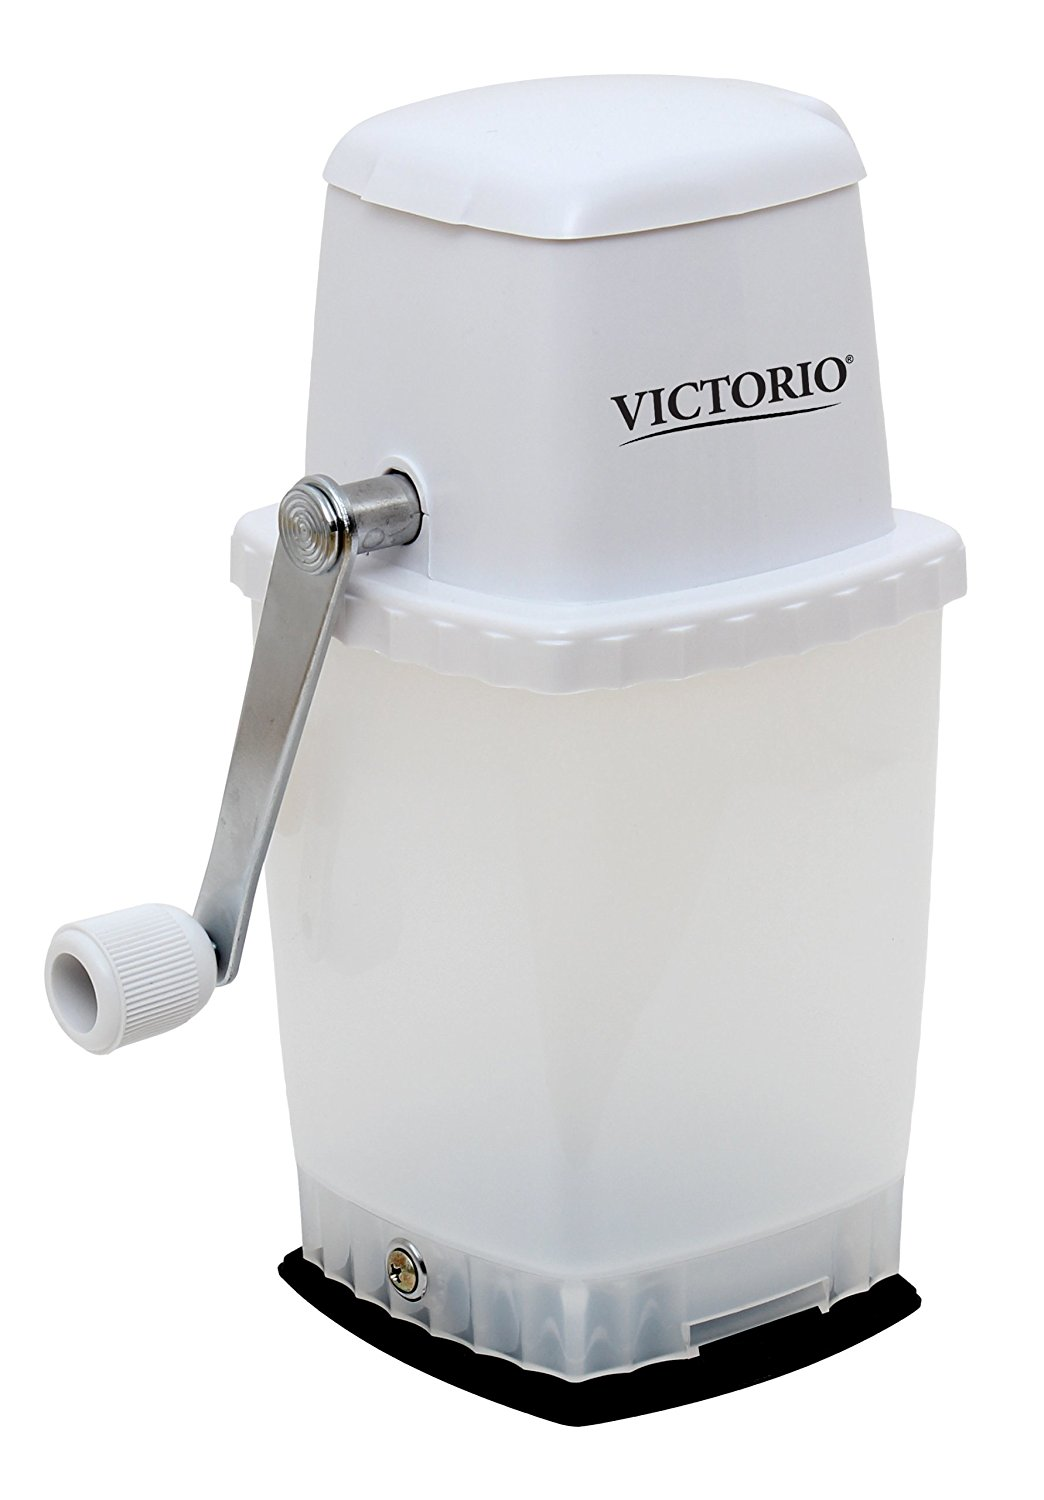 Portable Hand Crank Ice Crusher VICTORIO VKP1126, Ship from USA,Brand Victorio Kitchen Products by